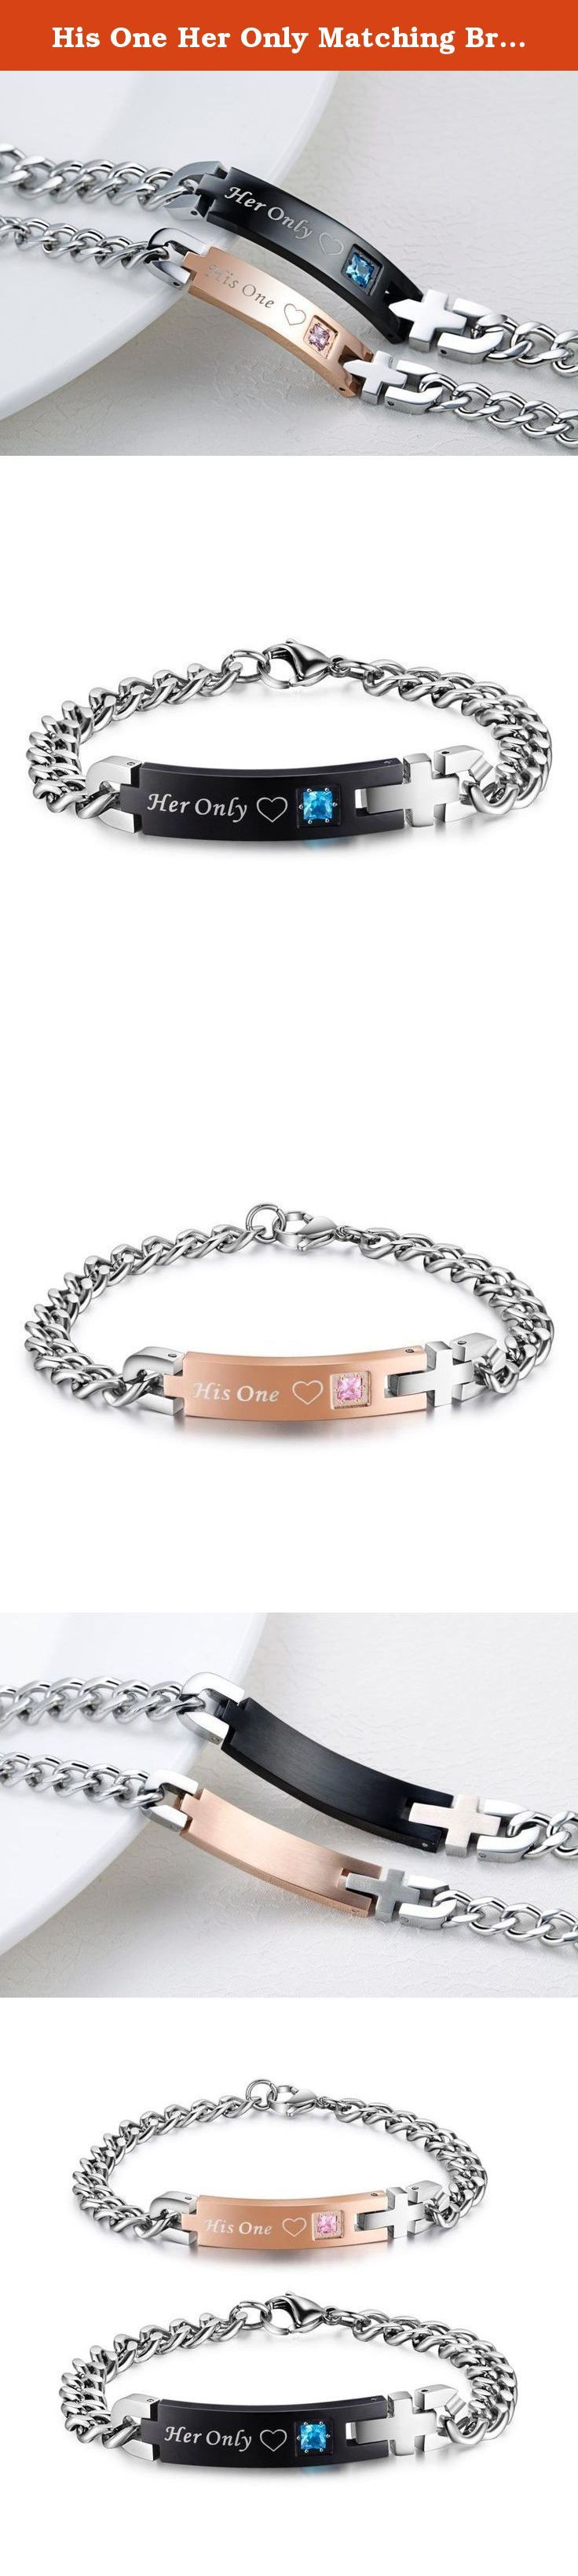 His One Her Only Matching Bracelets for Couples 316L Stainless Steel His and Hers Jewelry. Couples Bracelets,great to show your love for your partner.This bracelet set would make a stylish gift for couple!Show your special someone how much you really care.Perfect for Christmas or an Anniversary. Man bracelet: Her Only Woman bracelet: His One Weight:Man:24g,Women:15g.